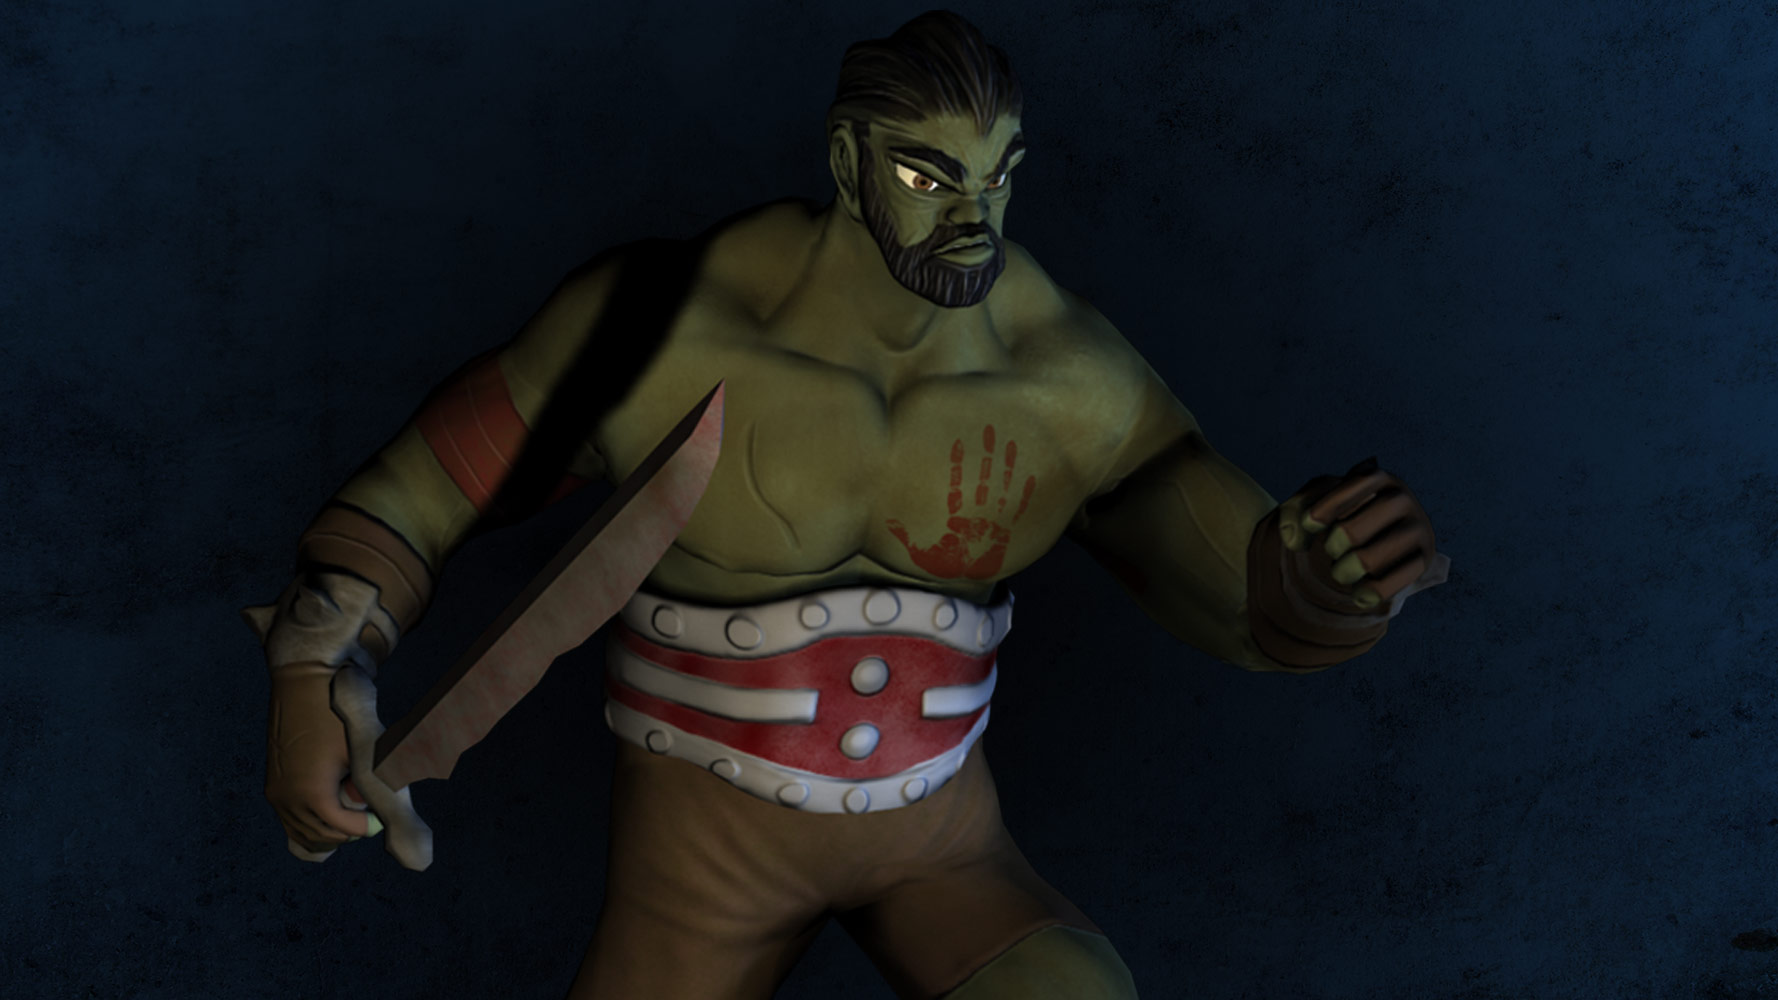 images/Orc Warrior Character